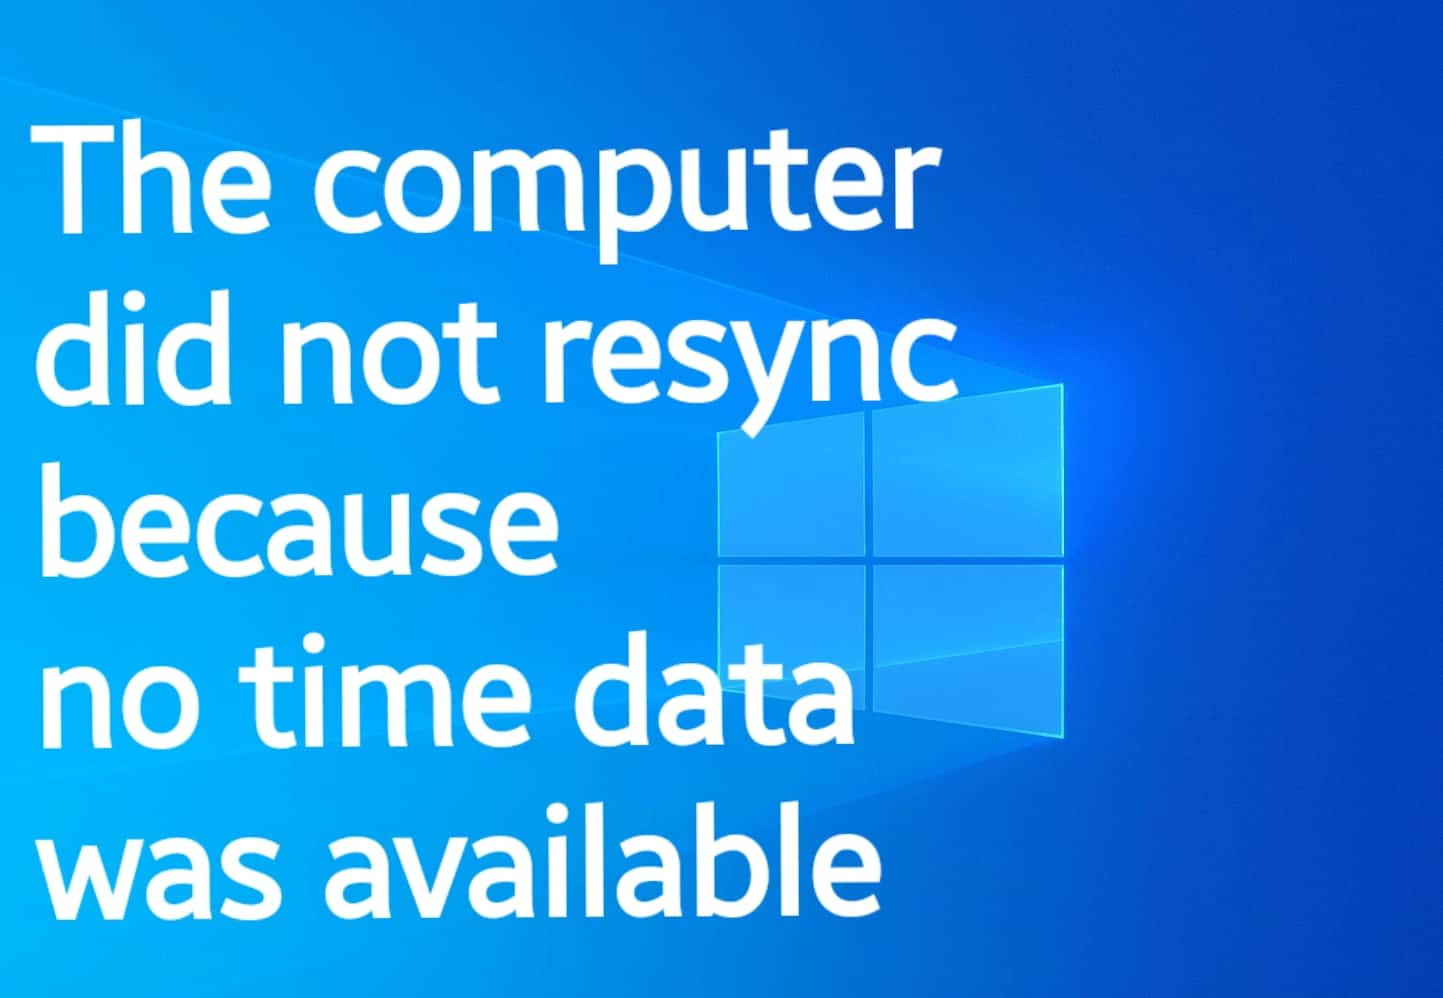 computer did resync because there was no time data available